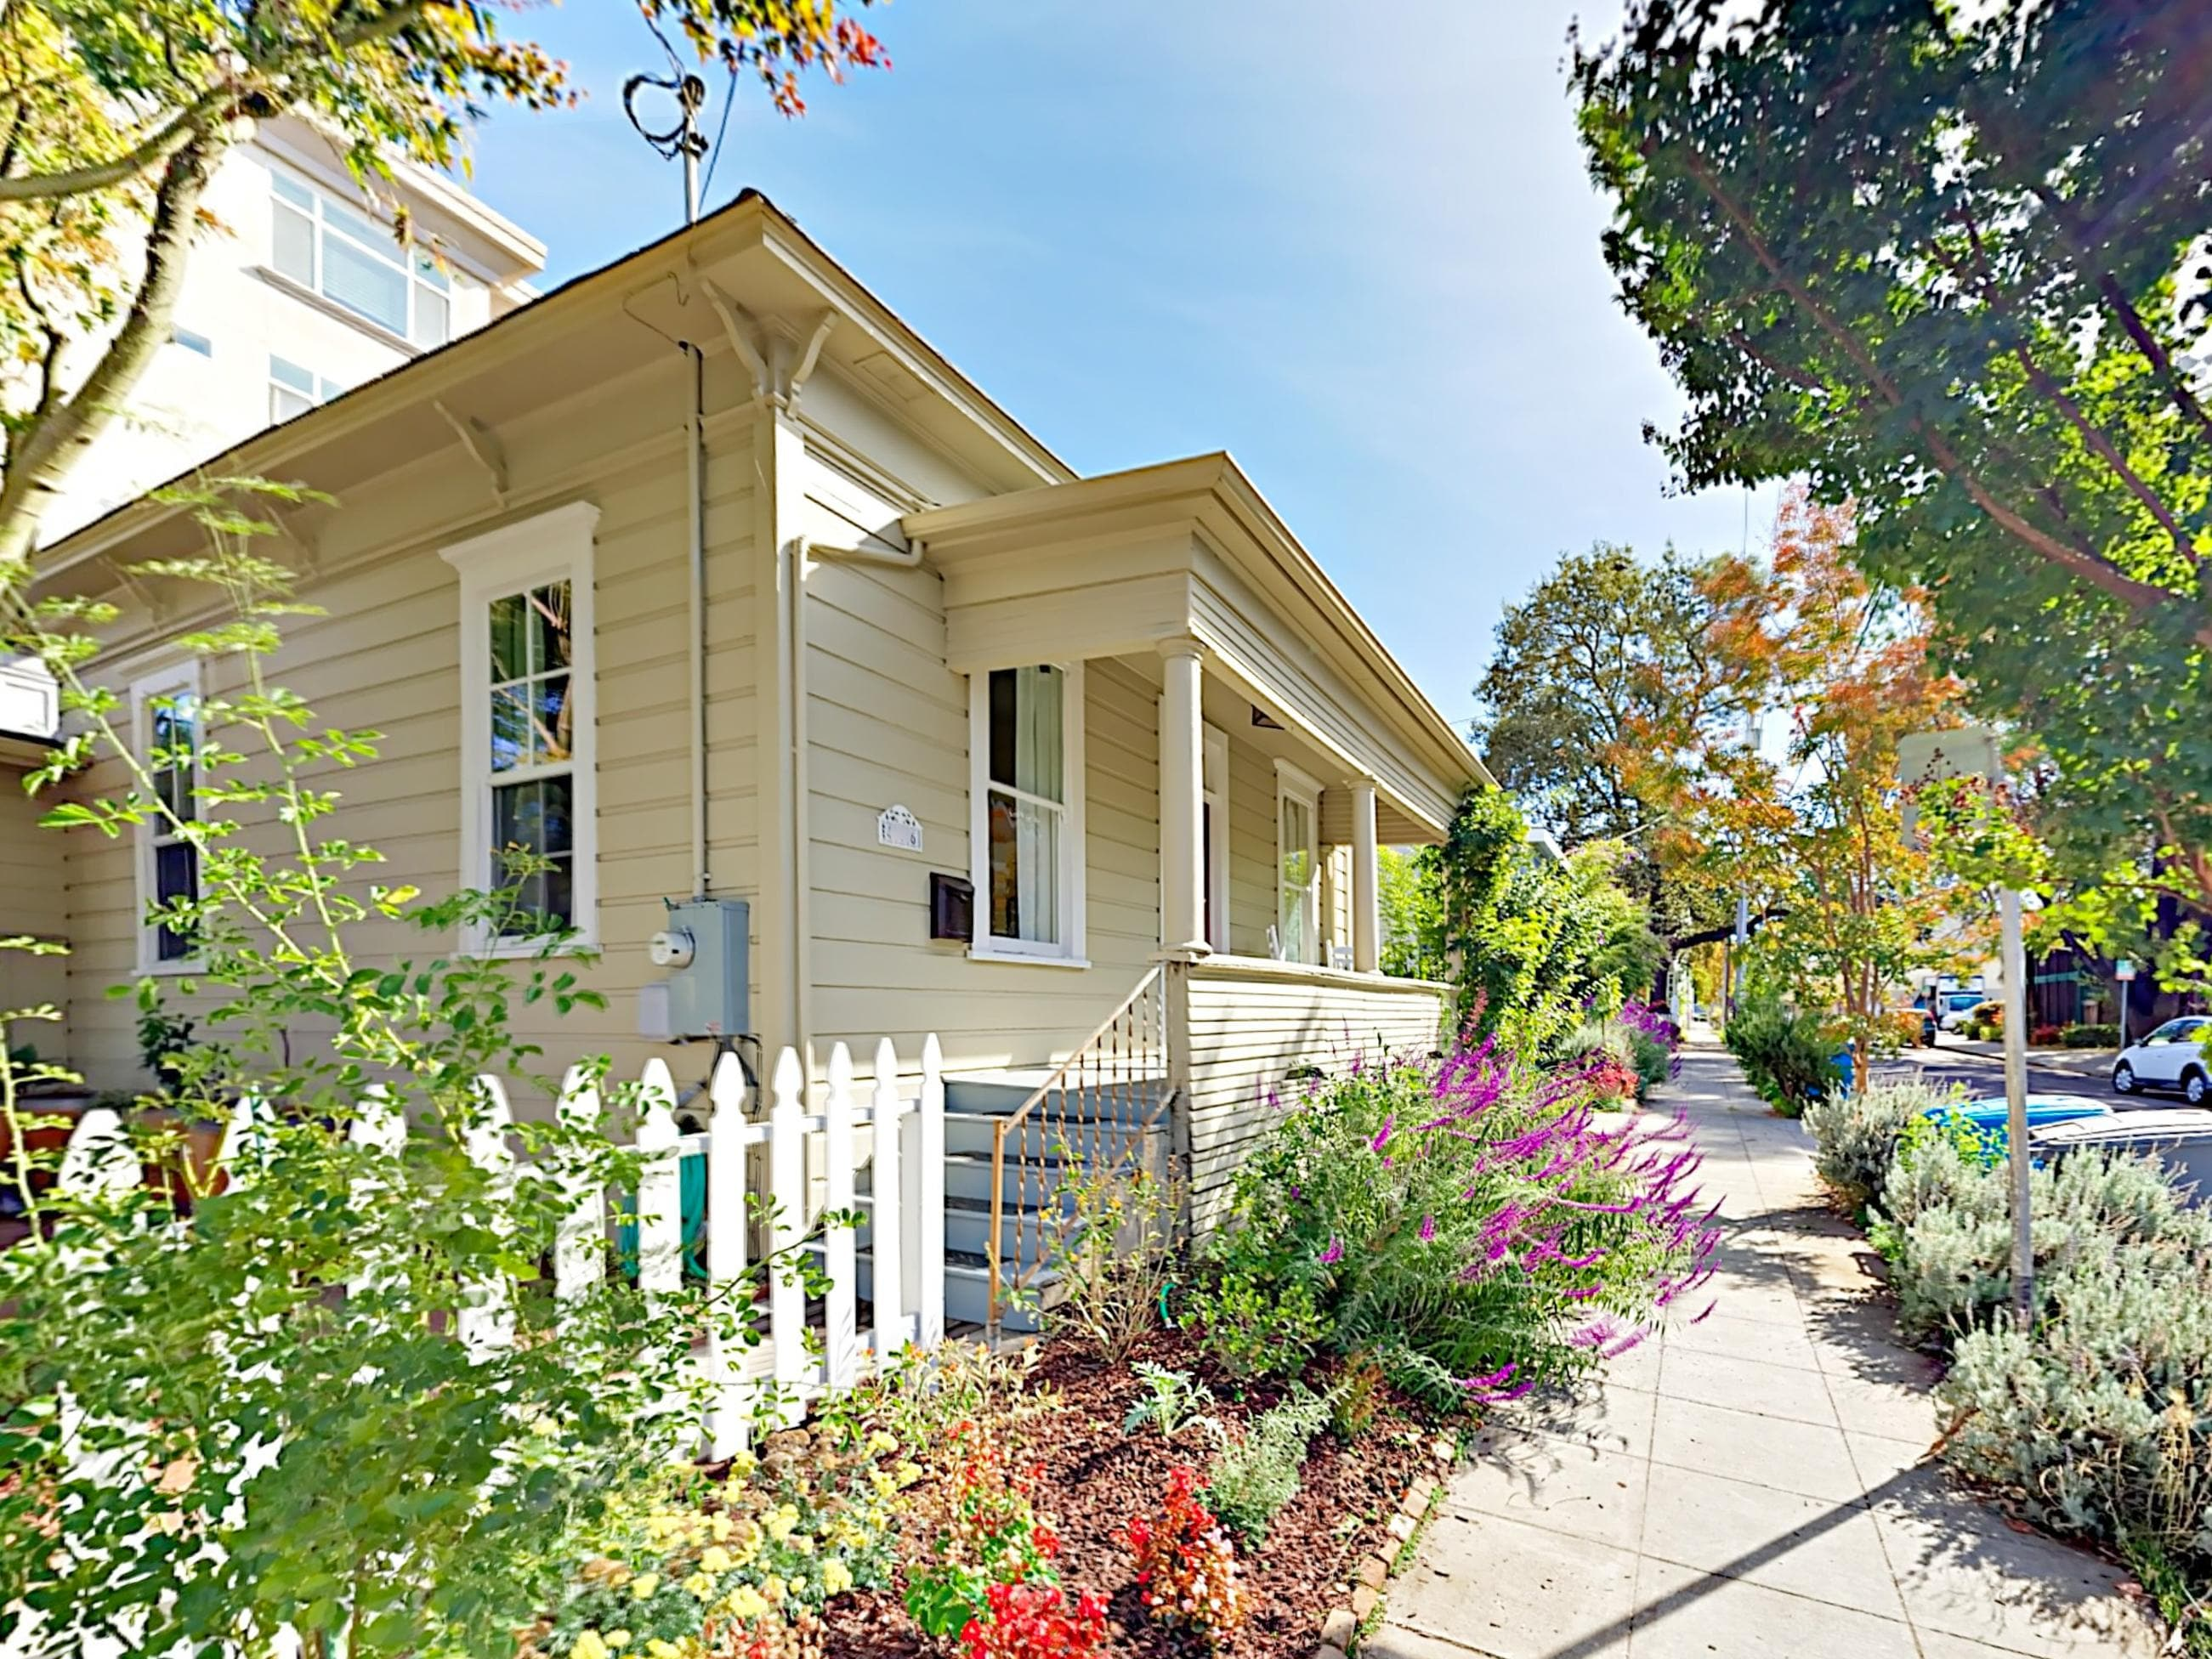 Welcome to Santa Rosa! Your home is professionally managed by TurnKey Vacation Rentals.